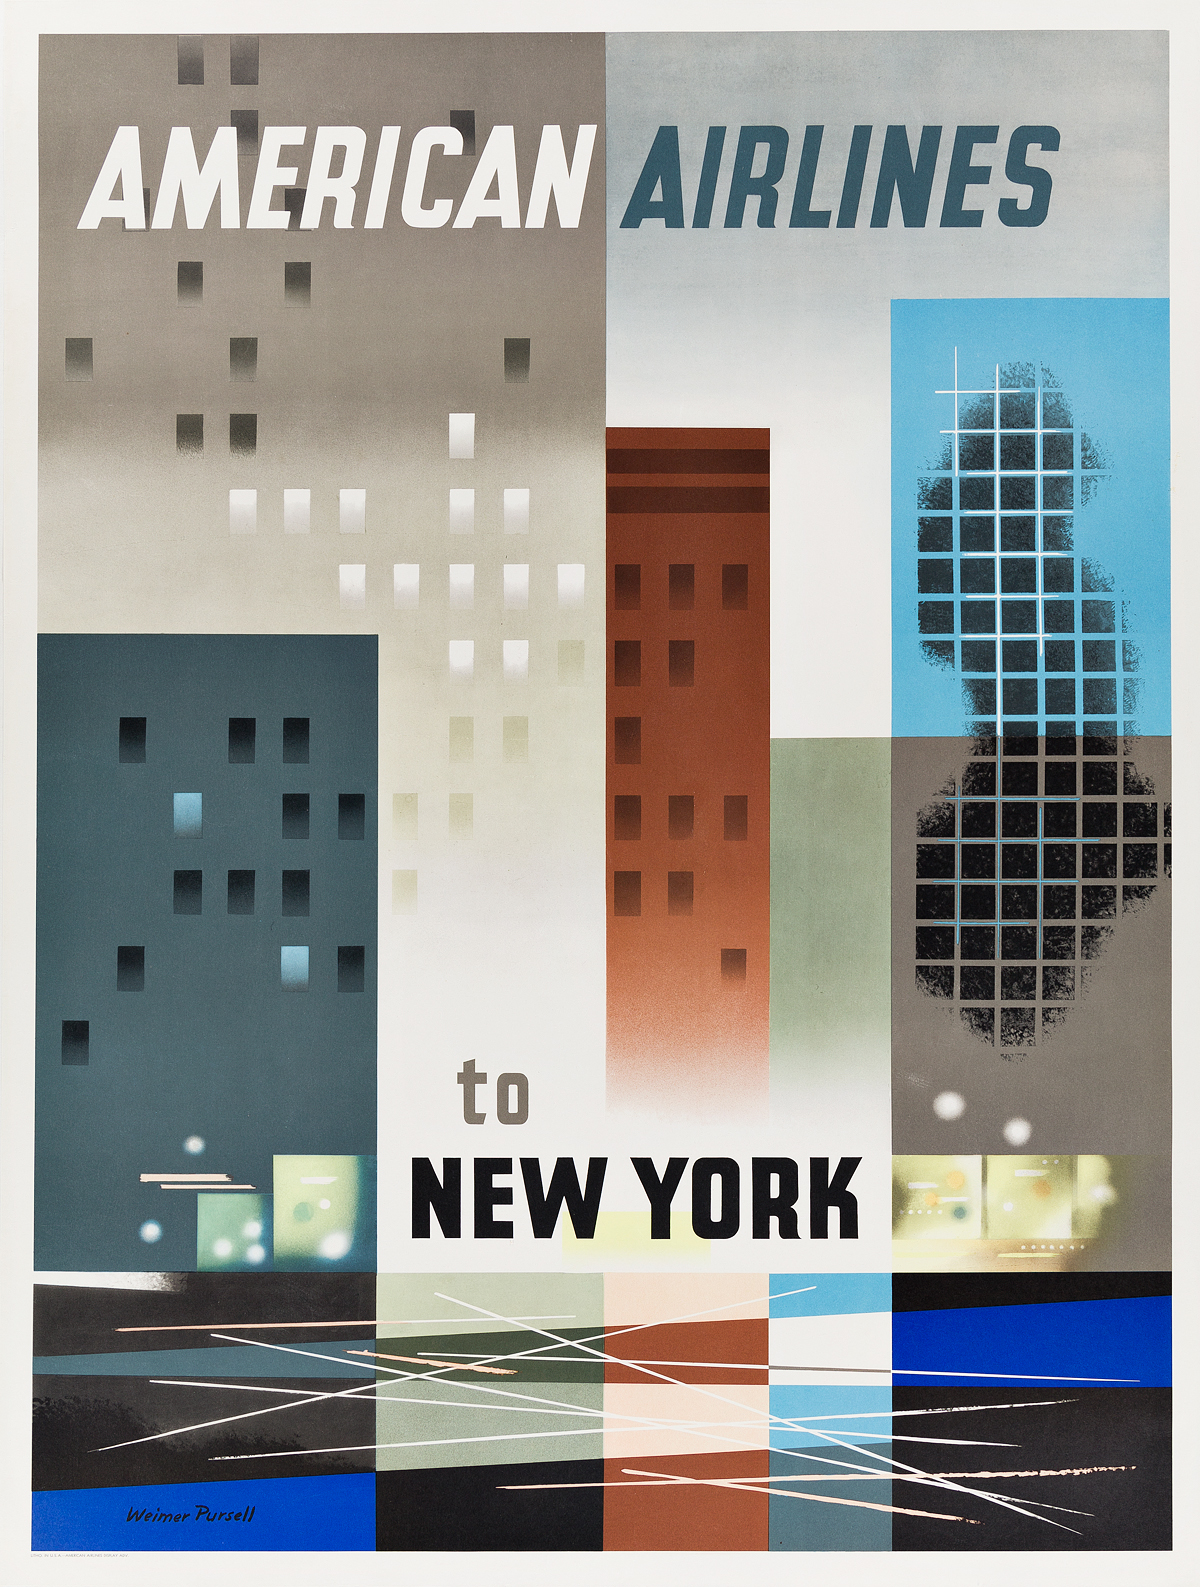 WEIMER-PURSELL-(1906-1974)-AMERICAN-AIRLINES-TO-NEW-YORK-1956-39x29-inches-100x75-cm